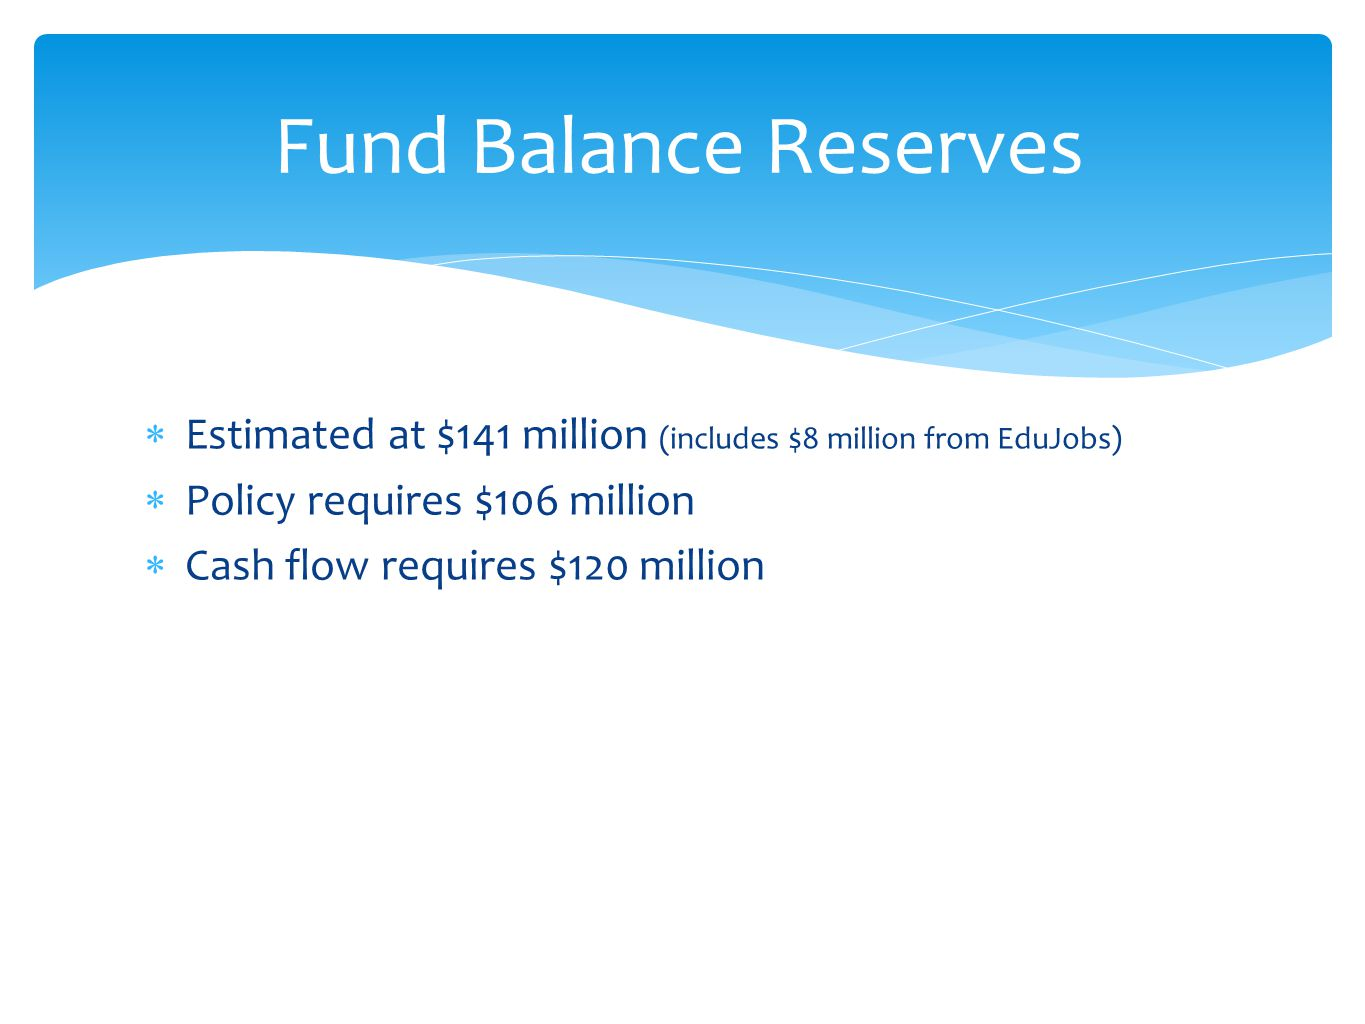  Estimated at $141 million (includes $8 million from EduJobs)  Policy requires $106 million  Cash flow requires $120 million Fund Balance Reserves